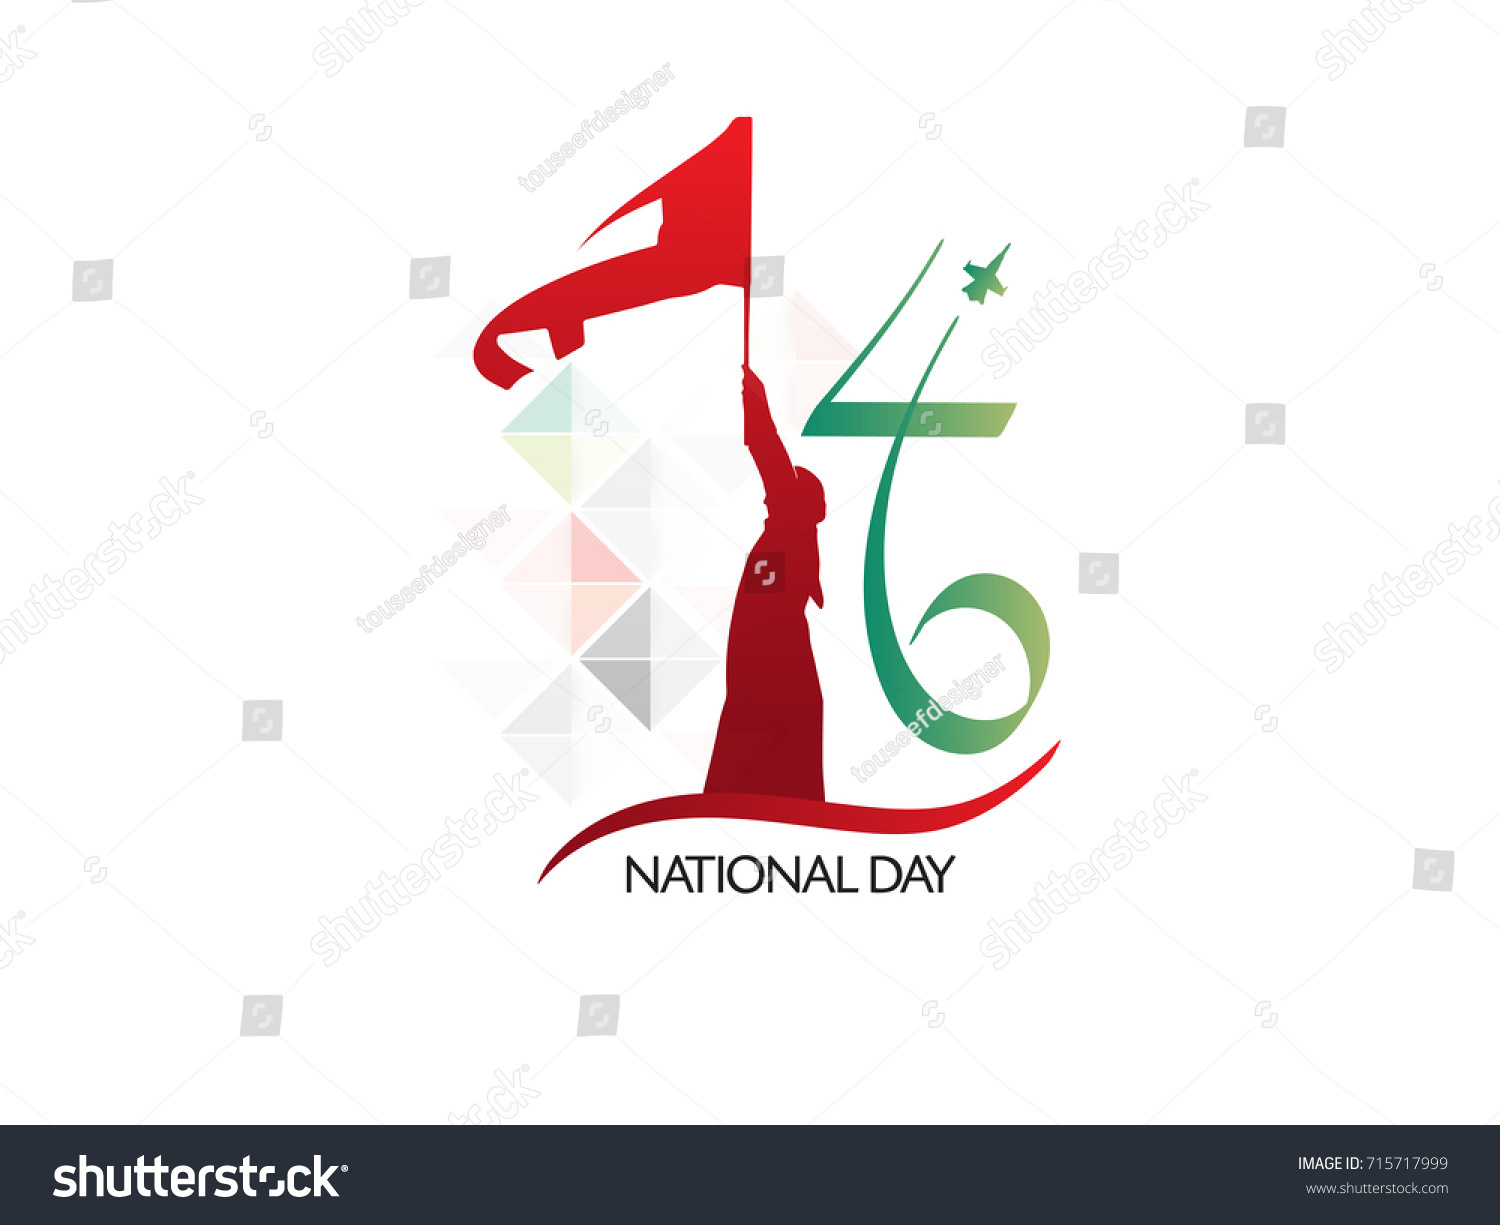 46 national day uae stock vector 715717999 shutterstock 46 national day uae biocorpaavc Images